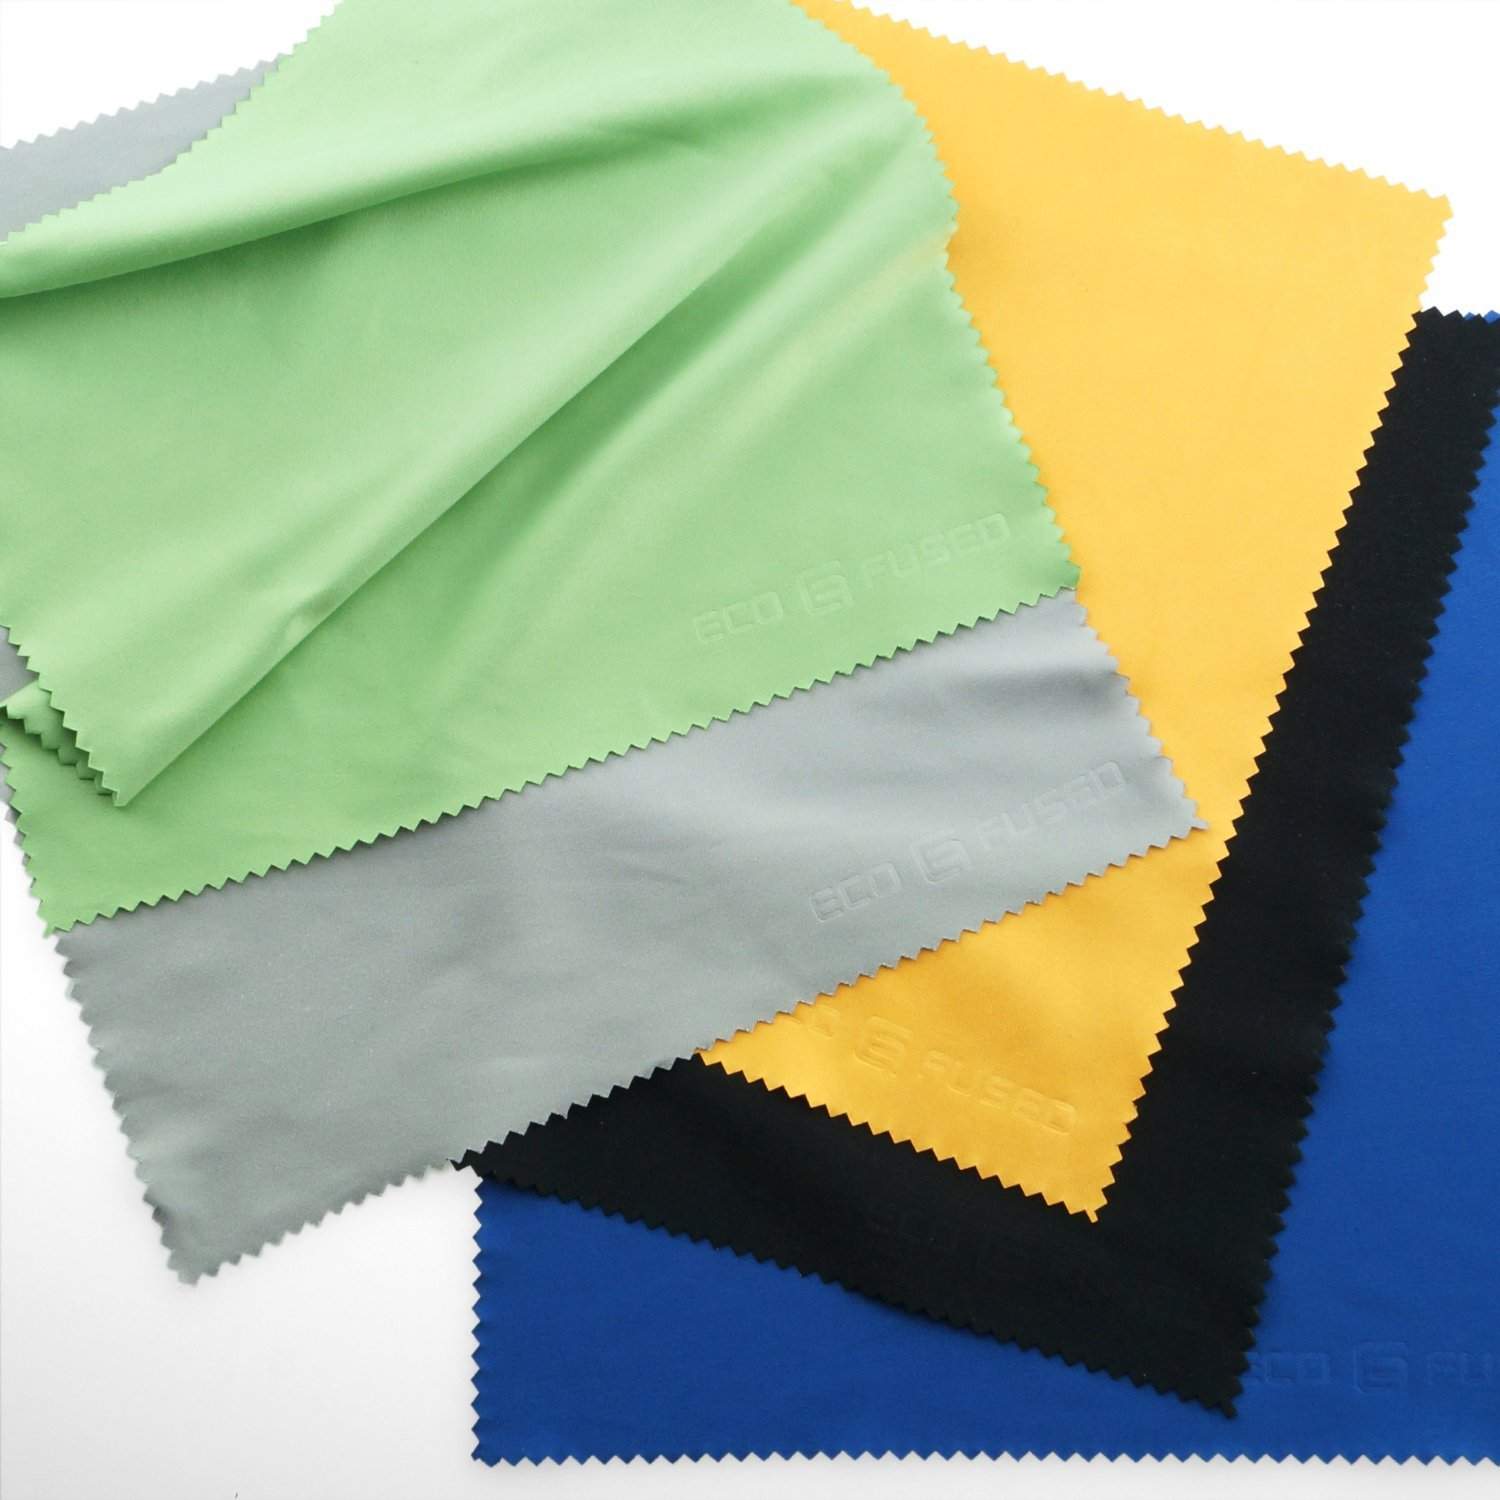 Extra Large Microfiber Cleaning Cloths - 5 Pack - 8 x 8 inch (Black, Grey, Green, Blue, Yellow) product image